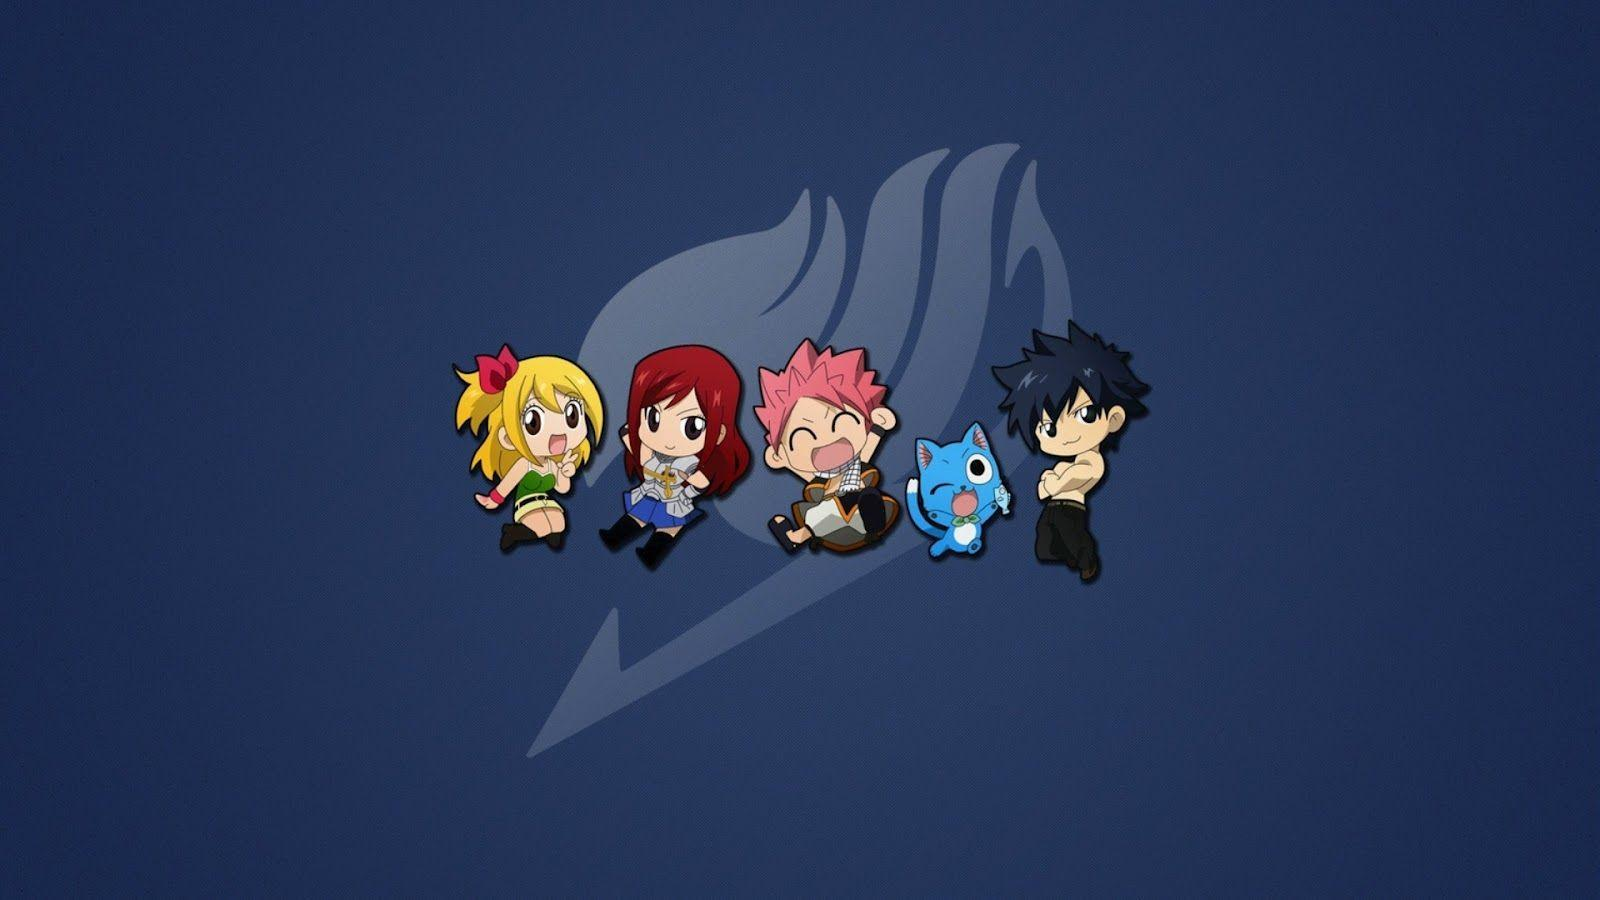 Fairy Tail Guild Wallpaper Hd Fairy Tail Wallpapers ...